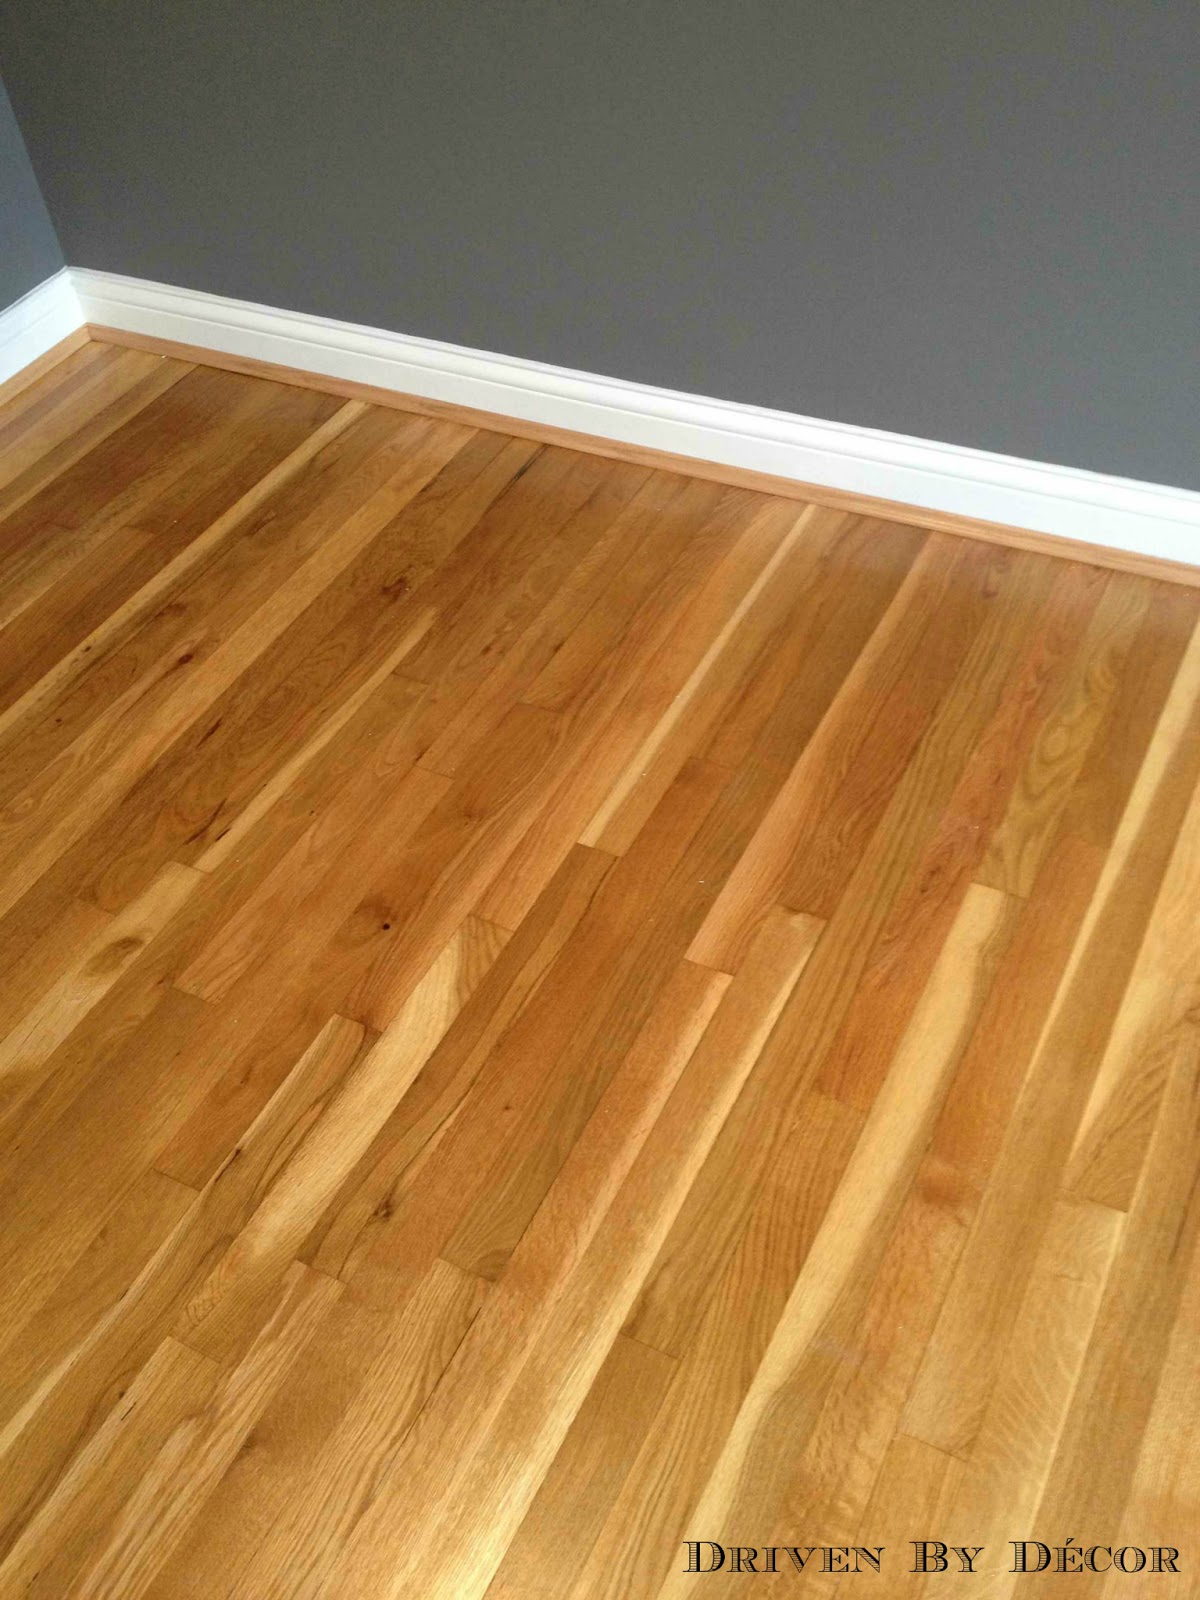 Refinishing hardwood floors water based vs oil based for Resurfacing wood floors